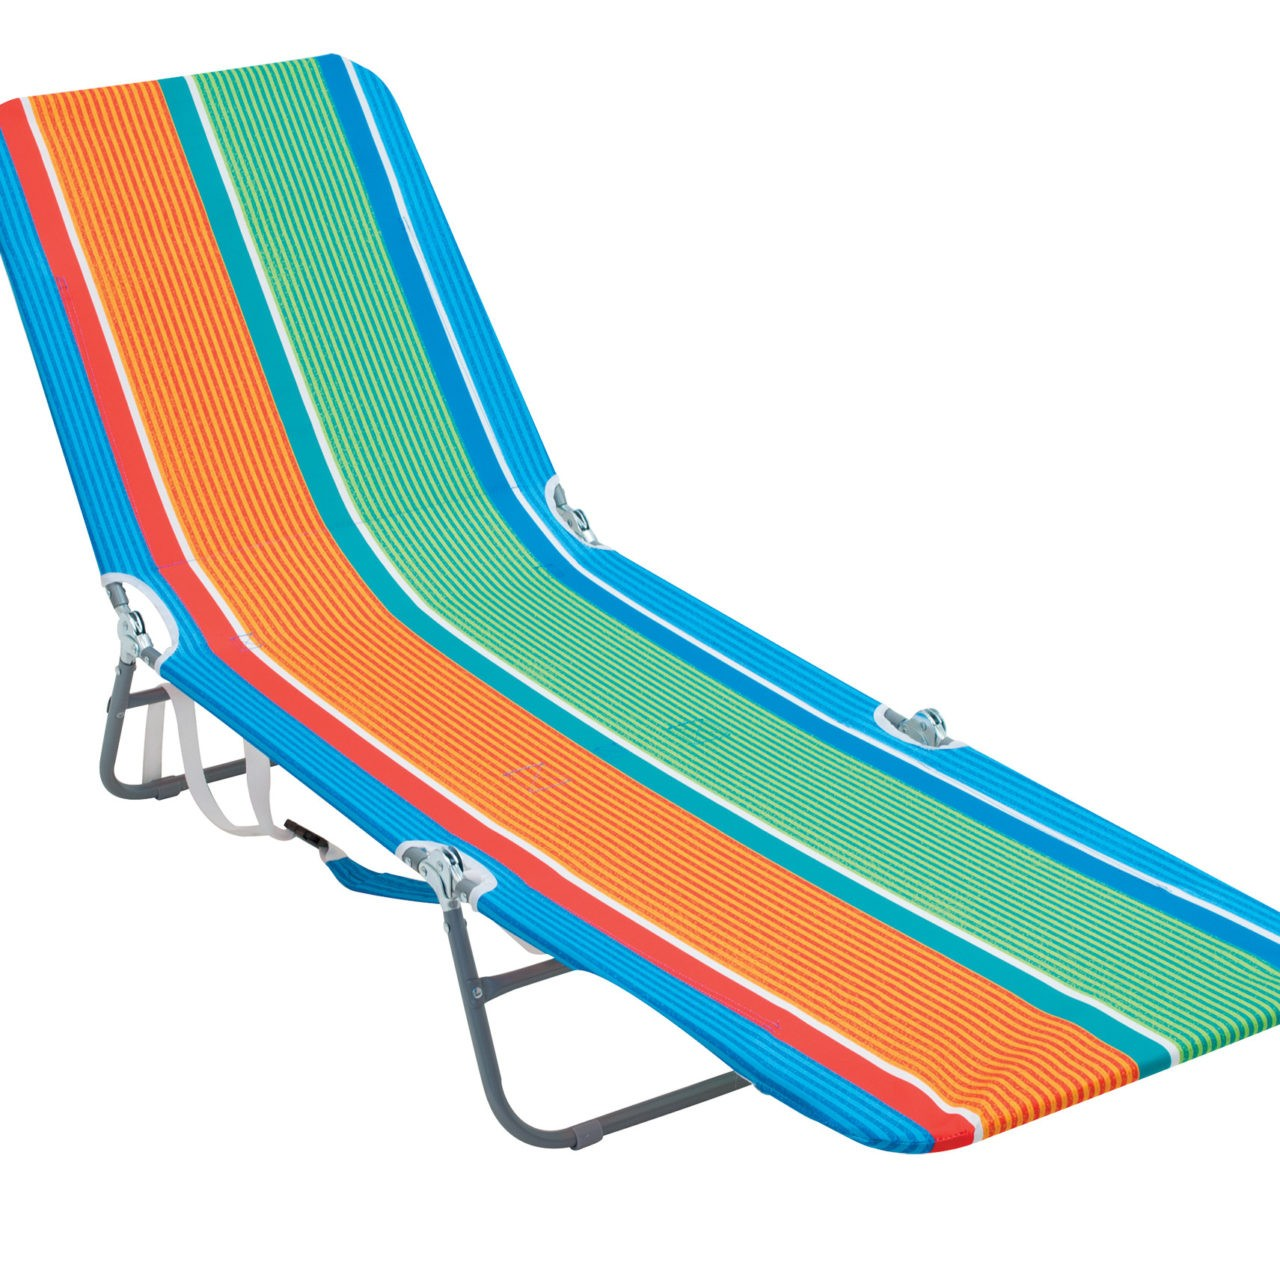 RIO Backpack Beach Chair Lounger